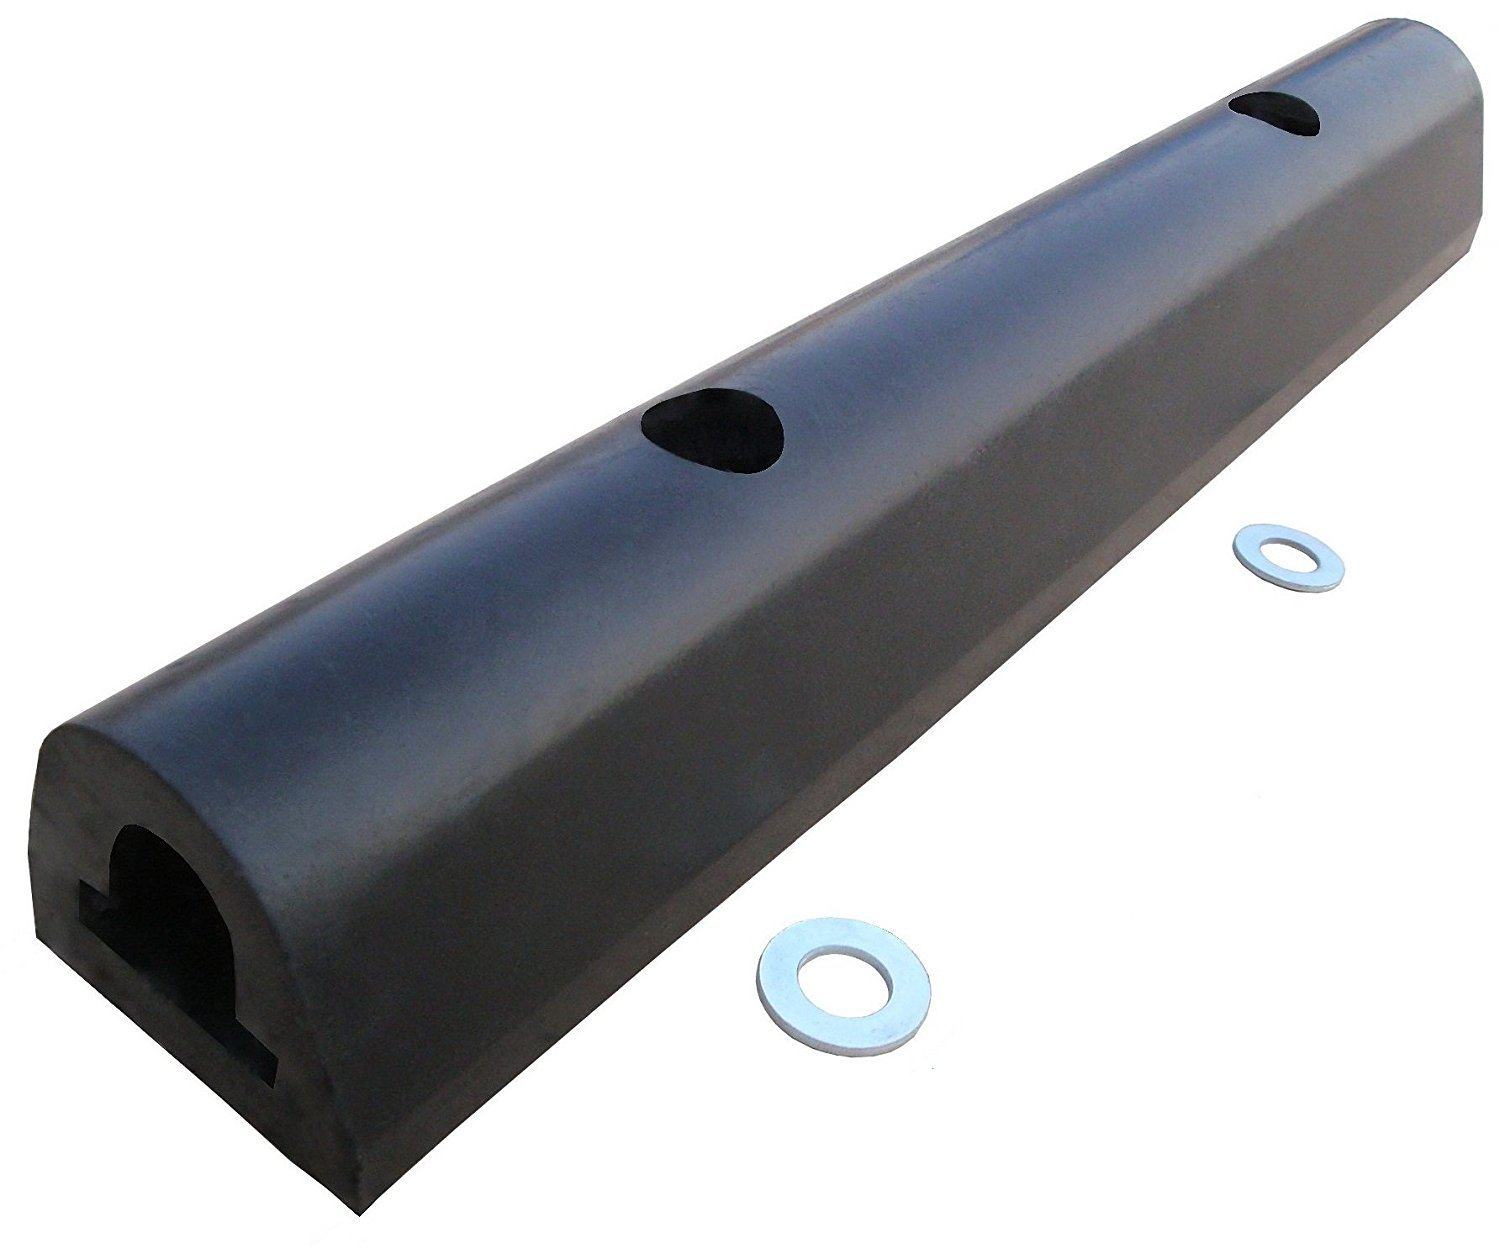 YM D6466 Rubber Extruded Dock Bumper